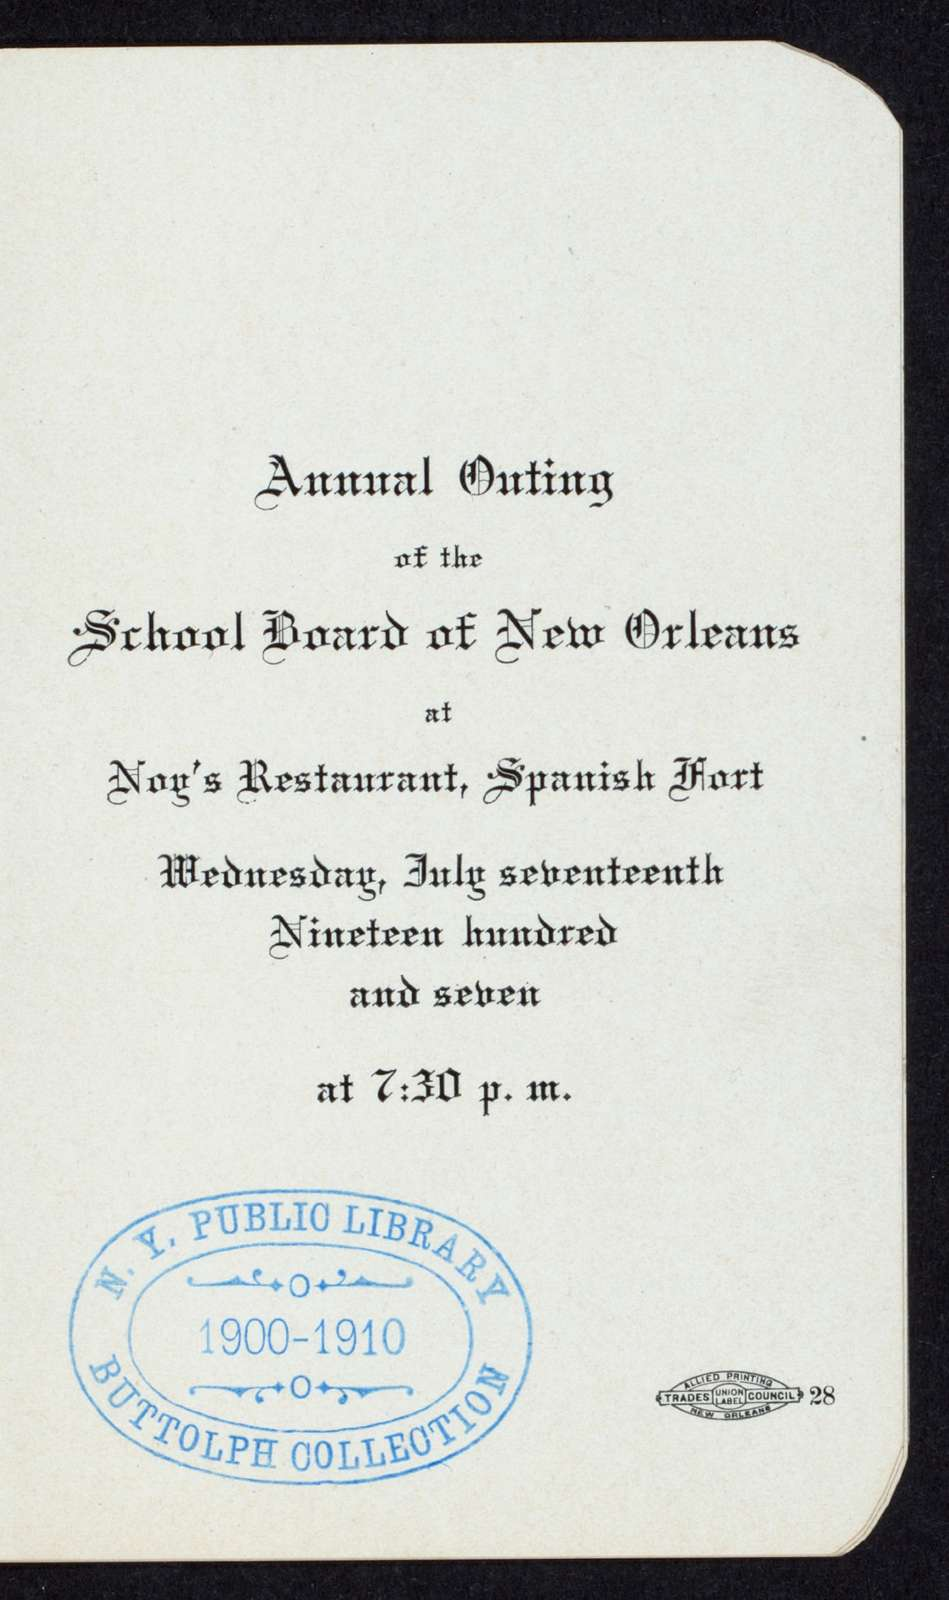 "ANNUAL OUTING [held by] SCHOOL BOARD OF NEW ORLEANS [at] ""NOG'S RESTAURANT, SPANISH FORT, NEW ORLEANS, LA"" (REST;)"